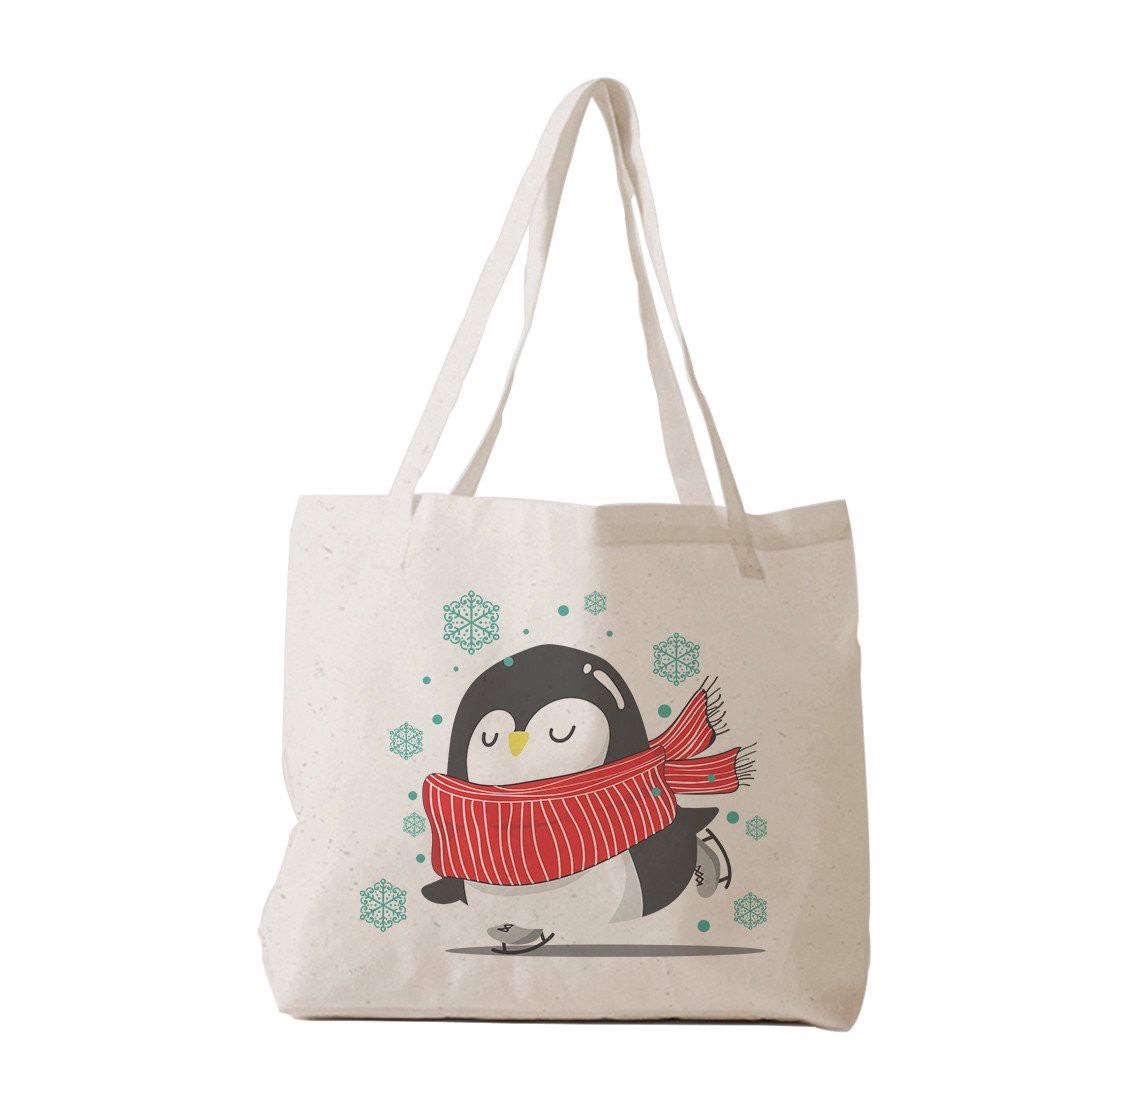 Tote Bag - Penguin with xmas